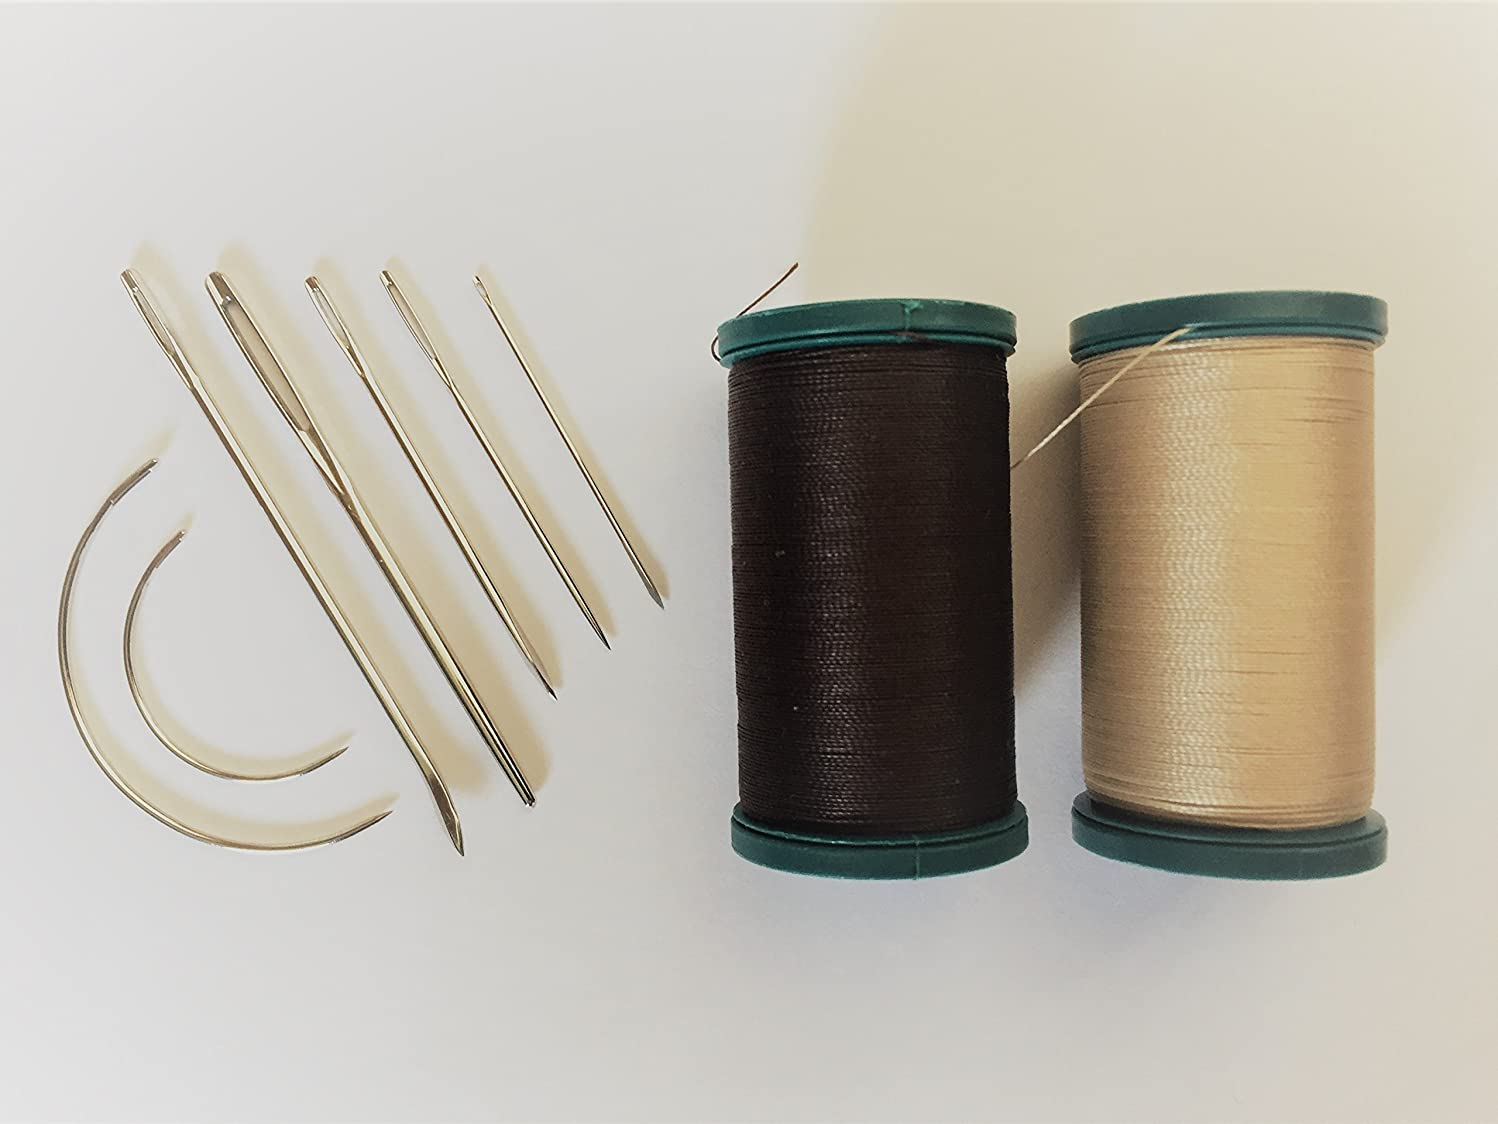 Outdoor Upholstery Repair Kit Coats Weather and UV Resistant Thread Plus Heavy Duty Assorted Hand Needles: 7 Needles and 2 spools 200 Yards Each Dk Brown & Khaki